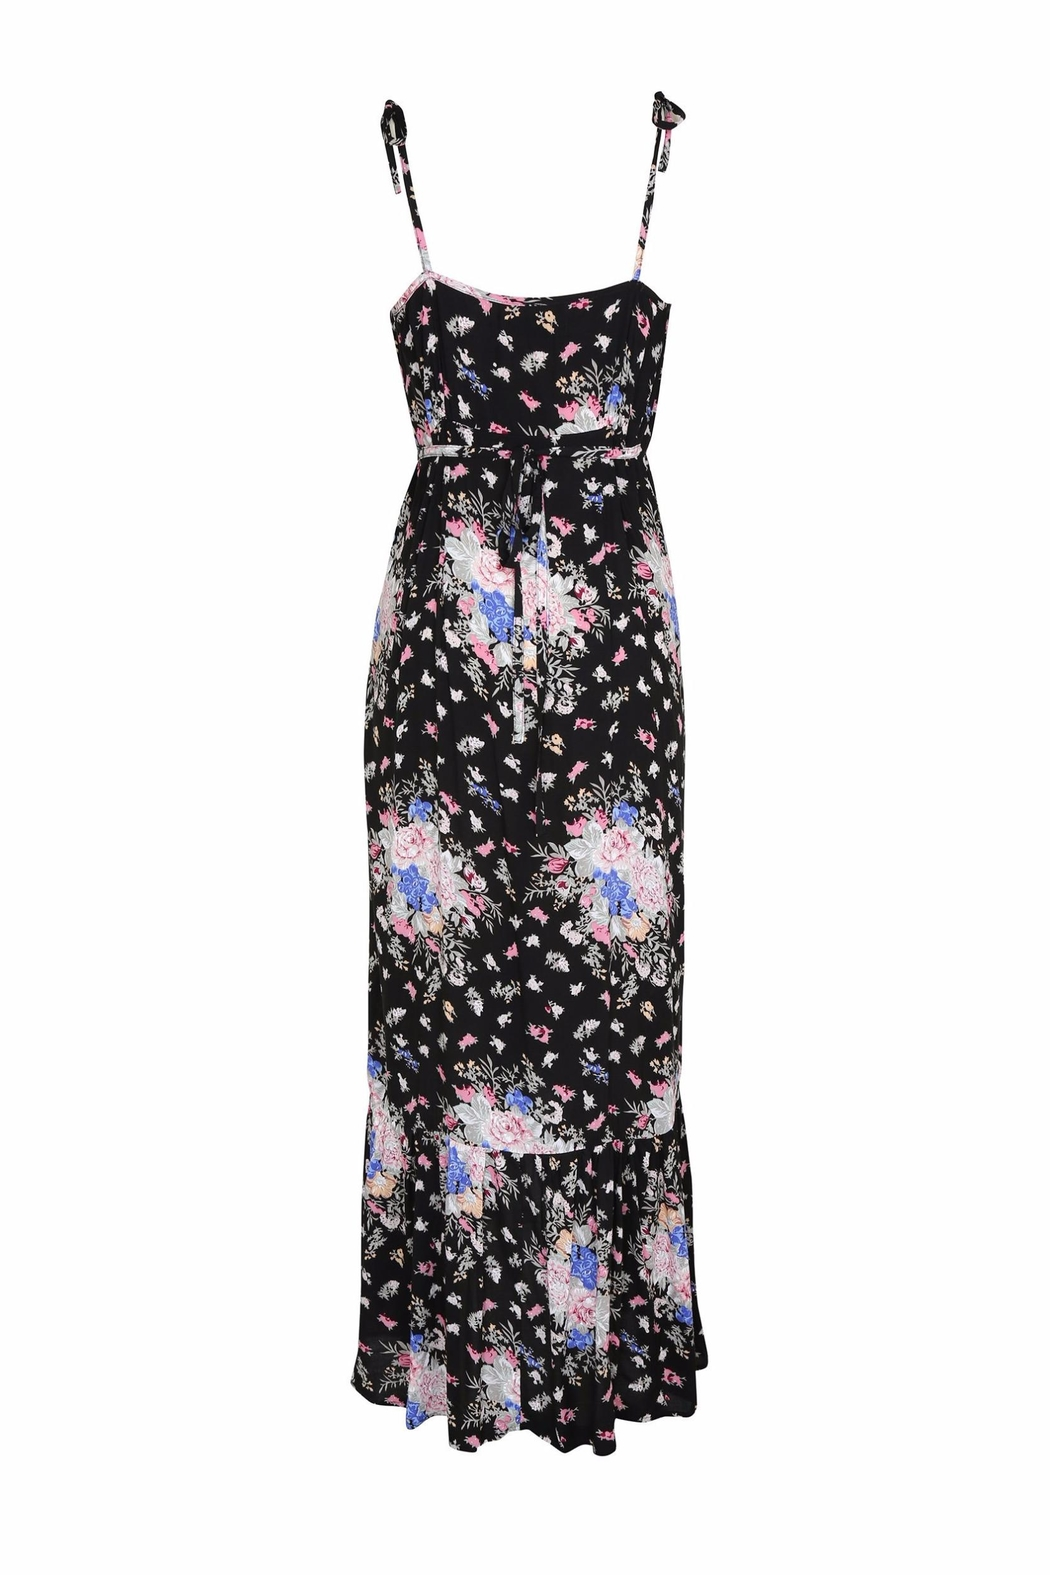 Auguste The Label  Dark Floral Dress - Front Full Image